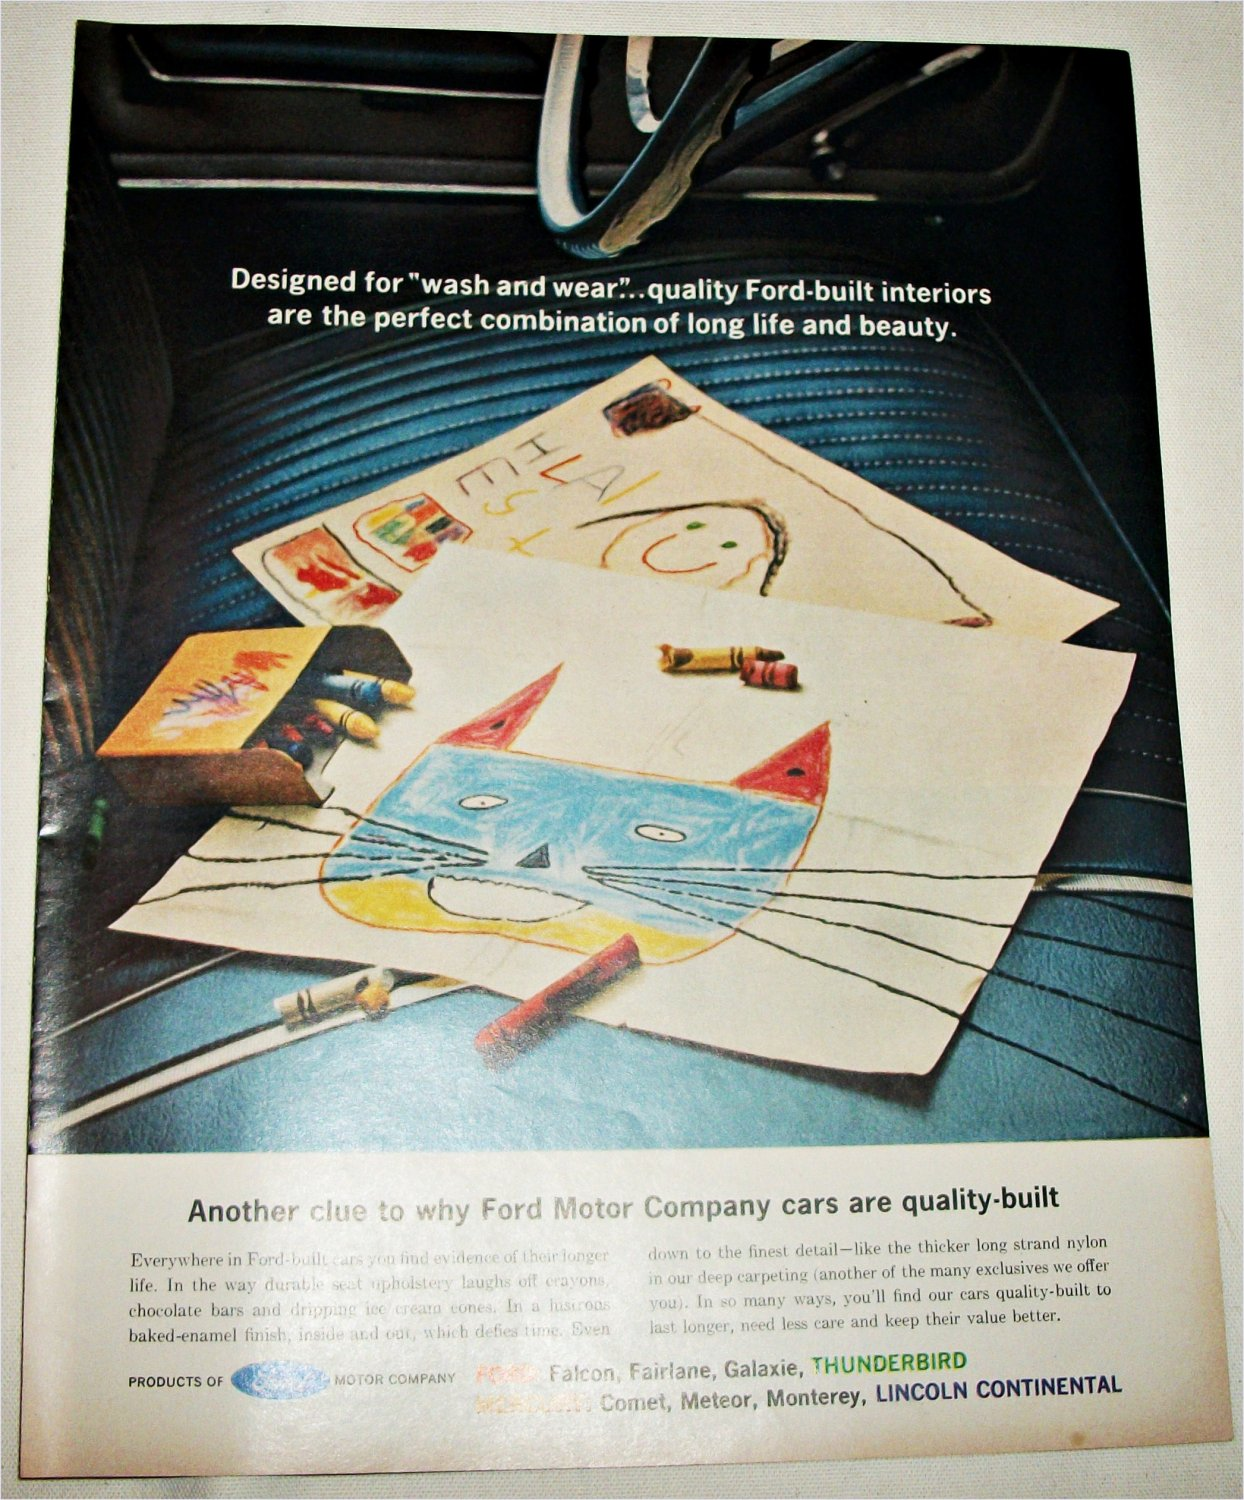 1962 Ford Quality Built Interiors ad